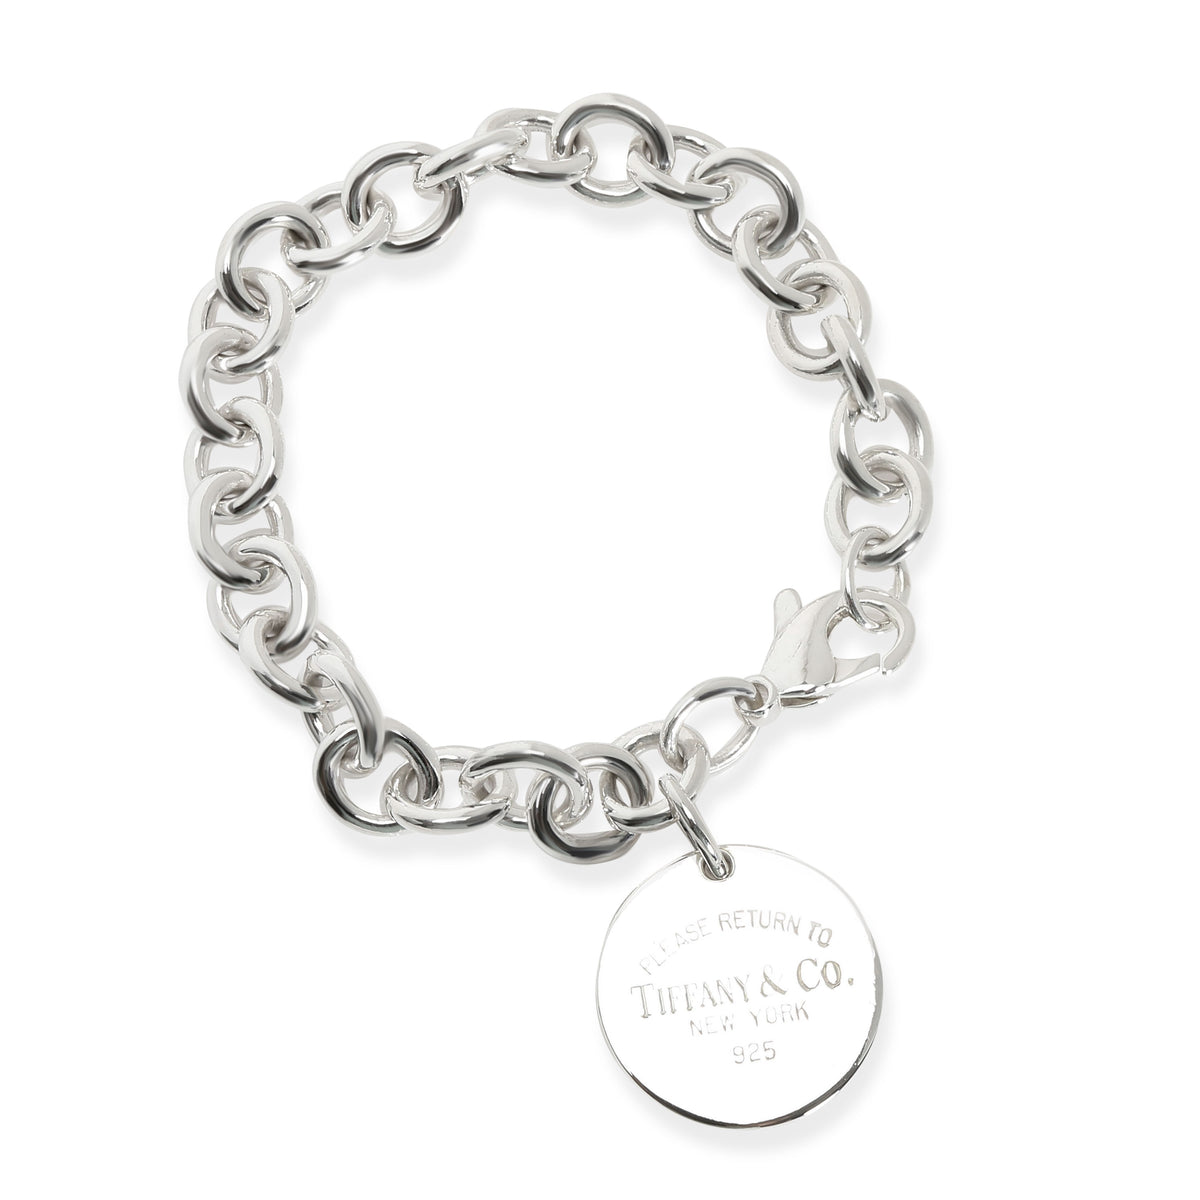 Tiffany & Co. Return To Tiffany Round Tag Bracelet in Sterling Silver